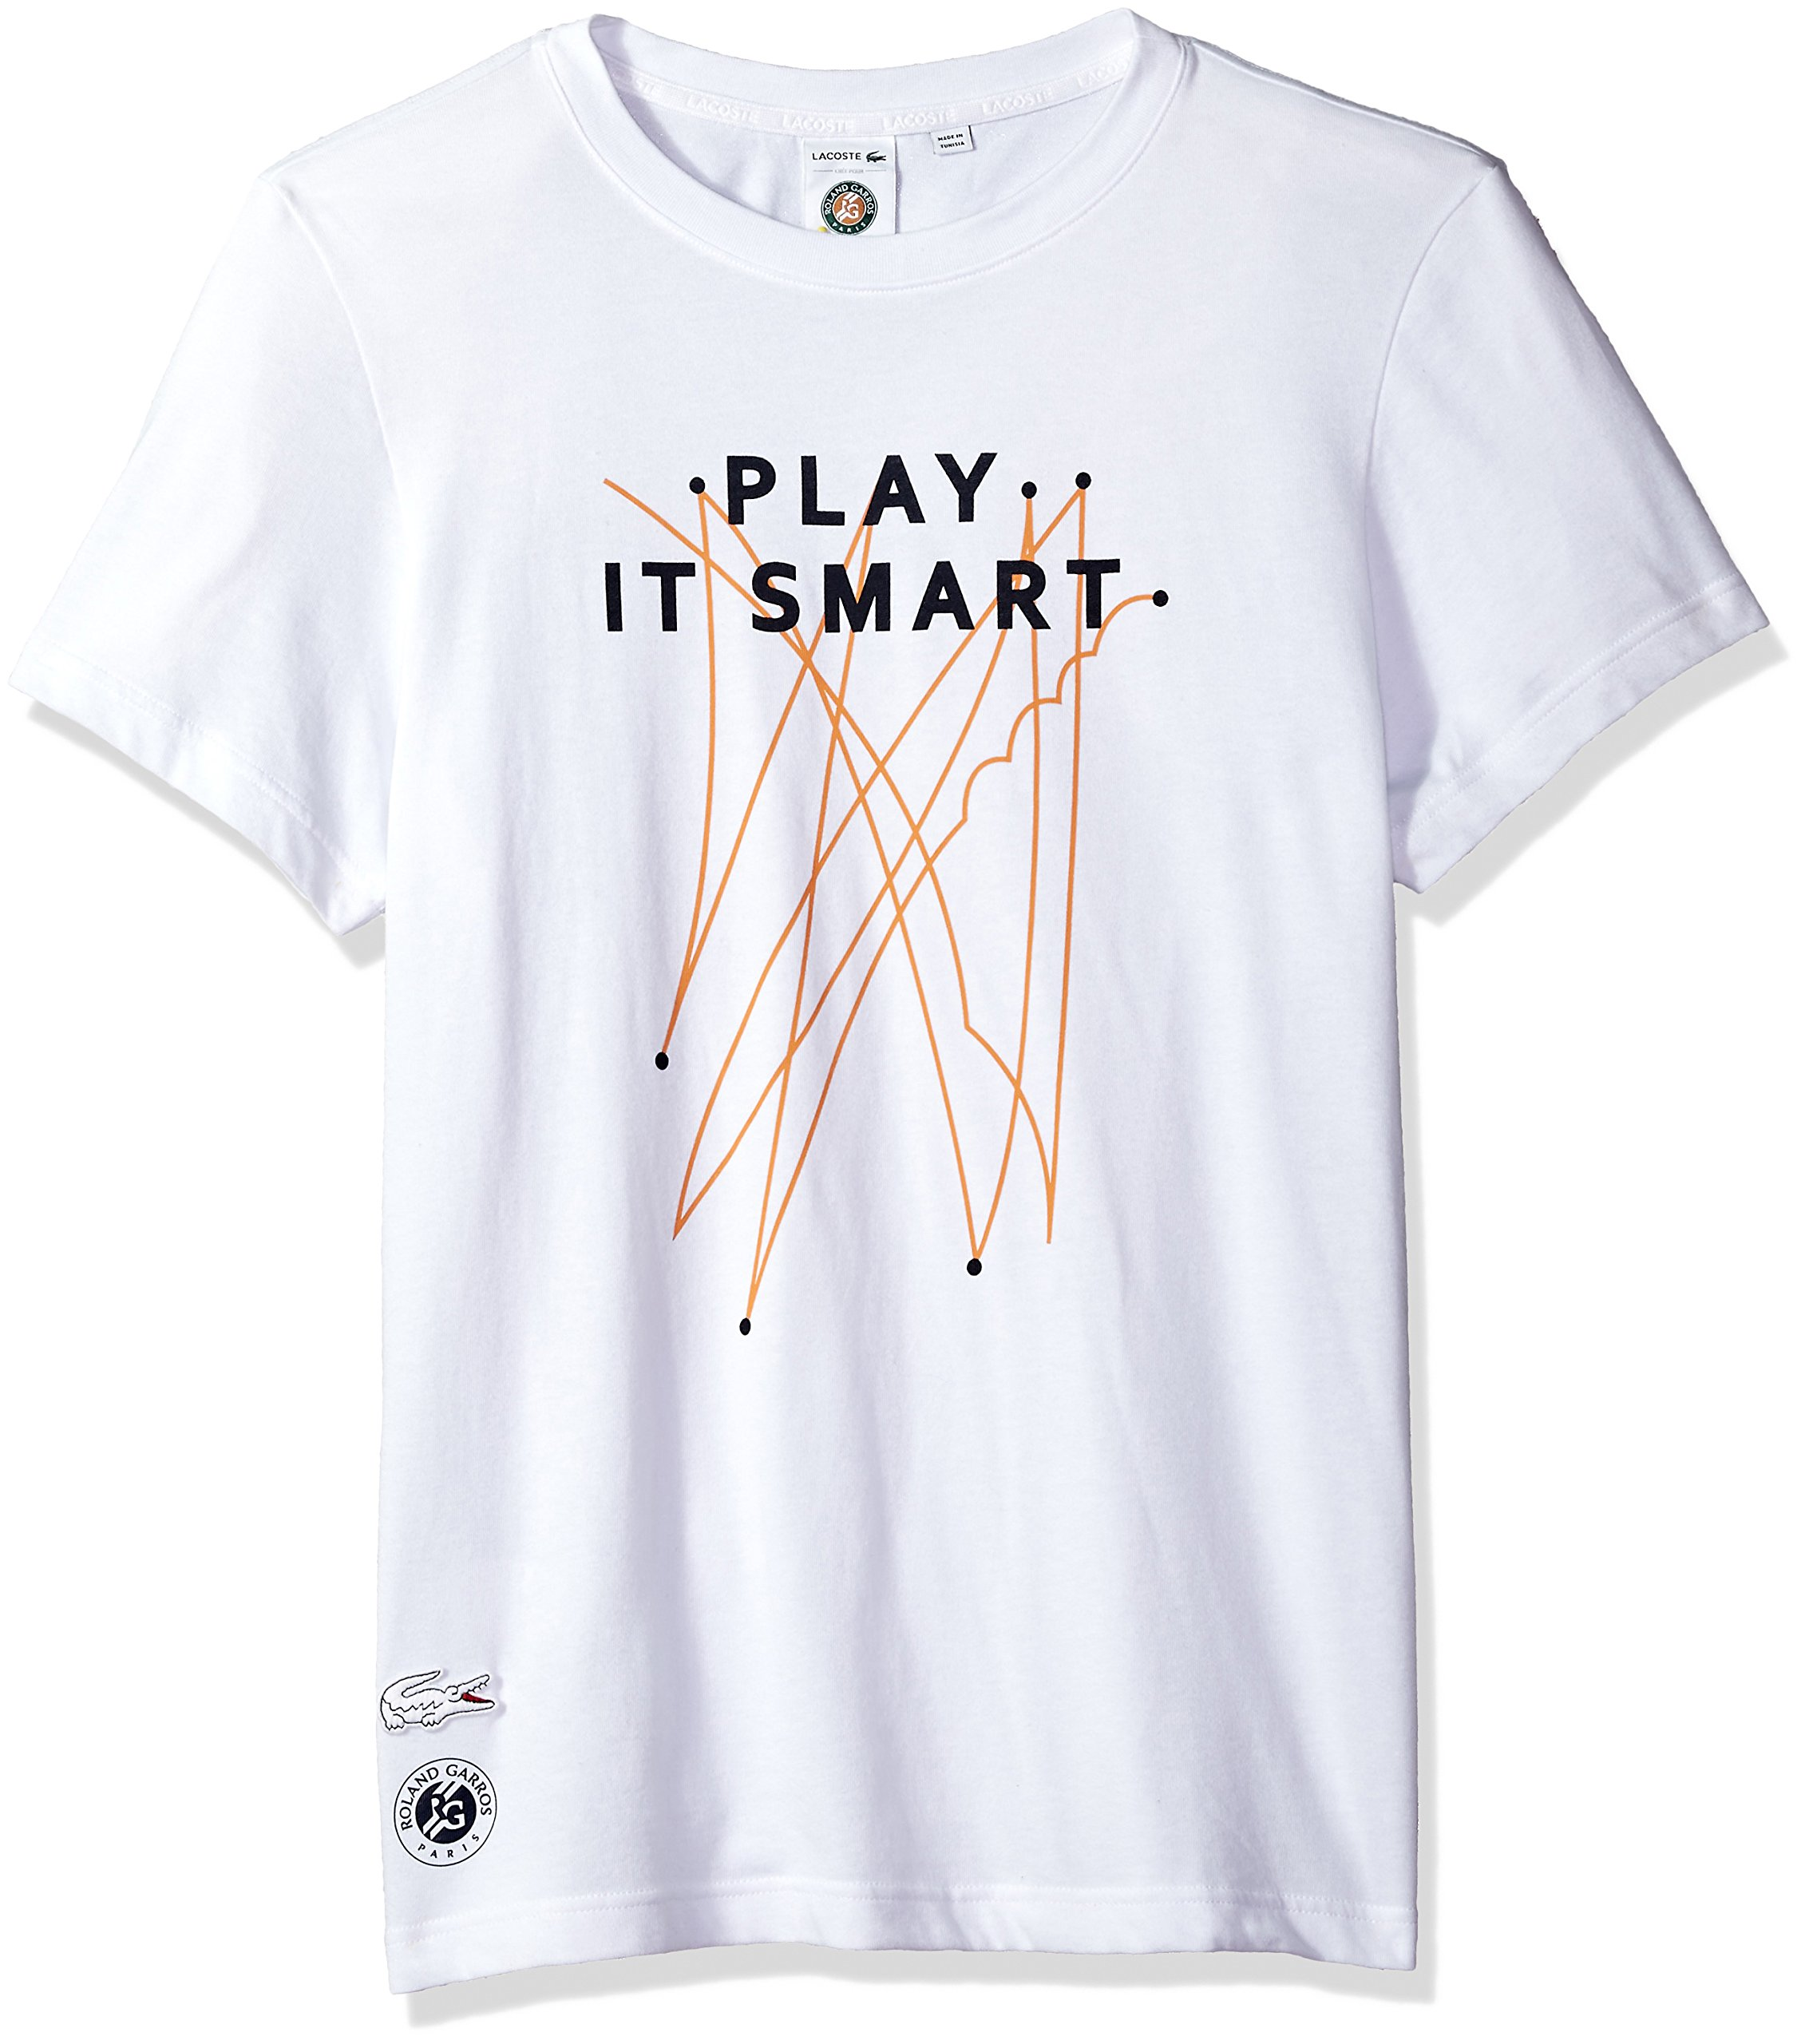 Lacoste Men's Short Sleeve Jersey Tech with Play It Smart Graphic T-Shirt, TH3352, White/Navy Blue/Apricot, X-Large